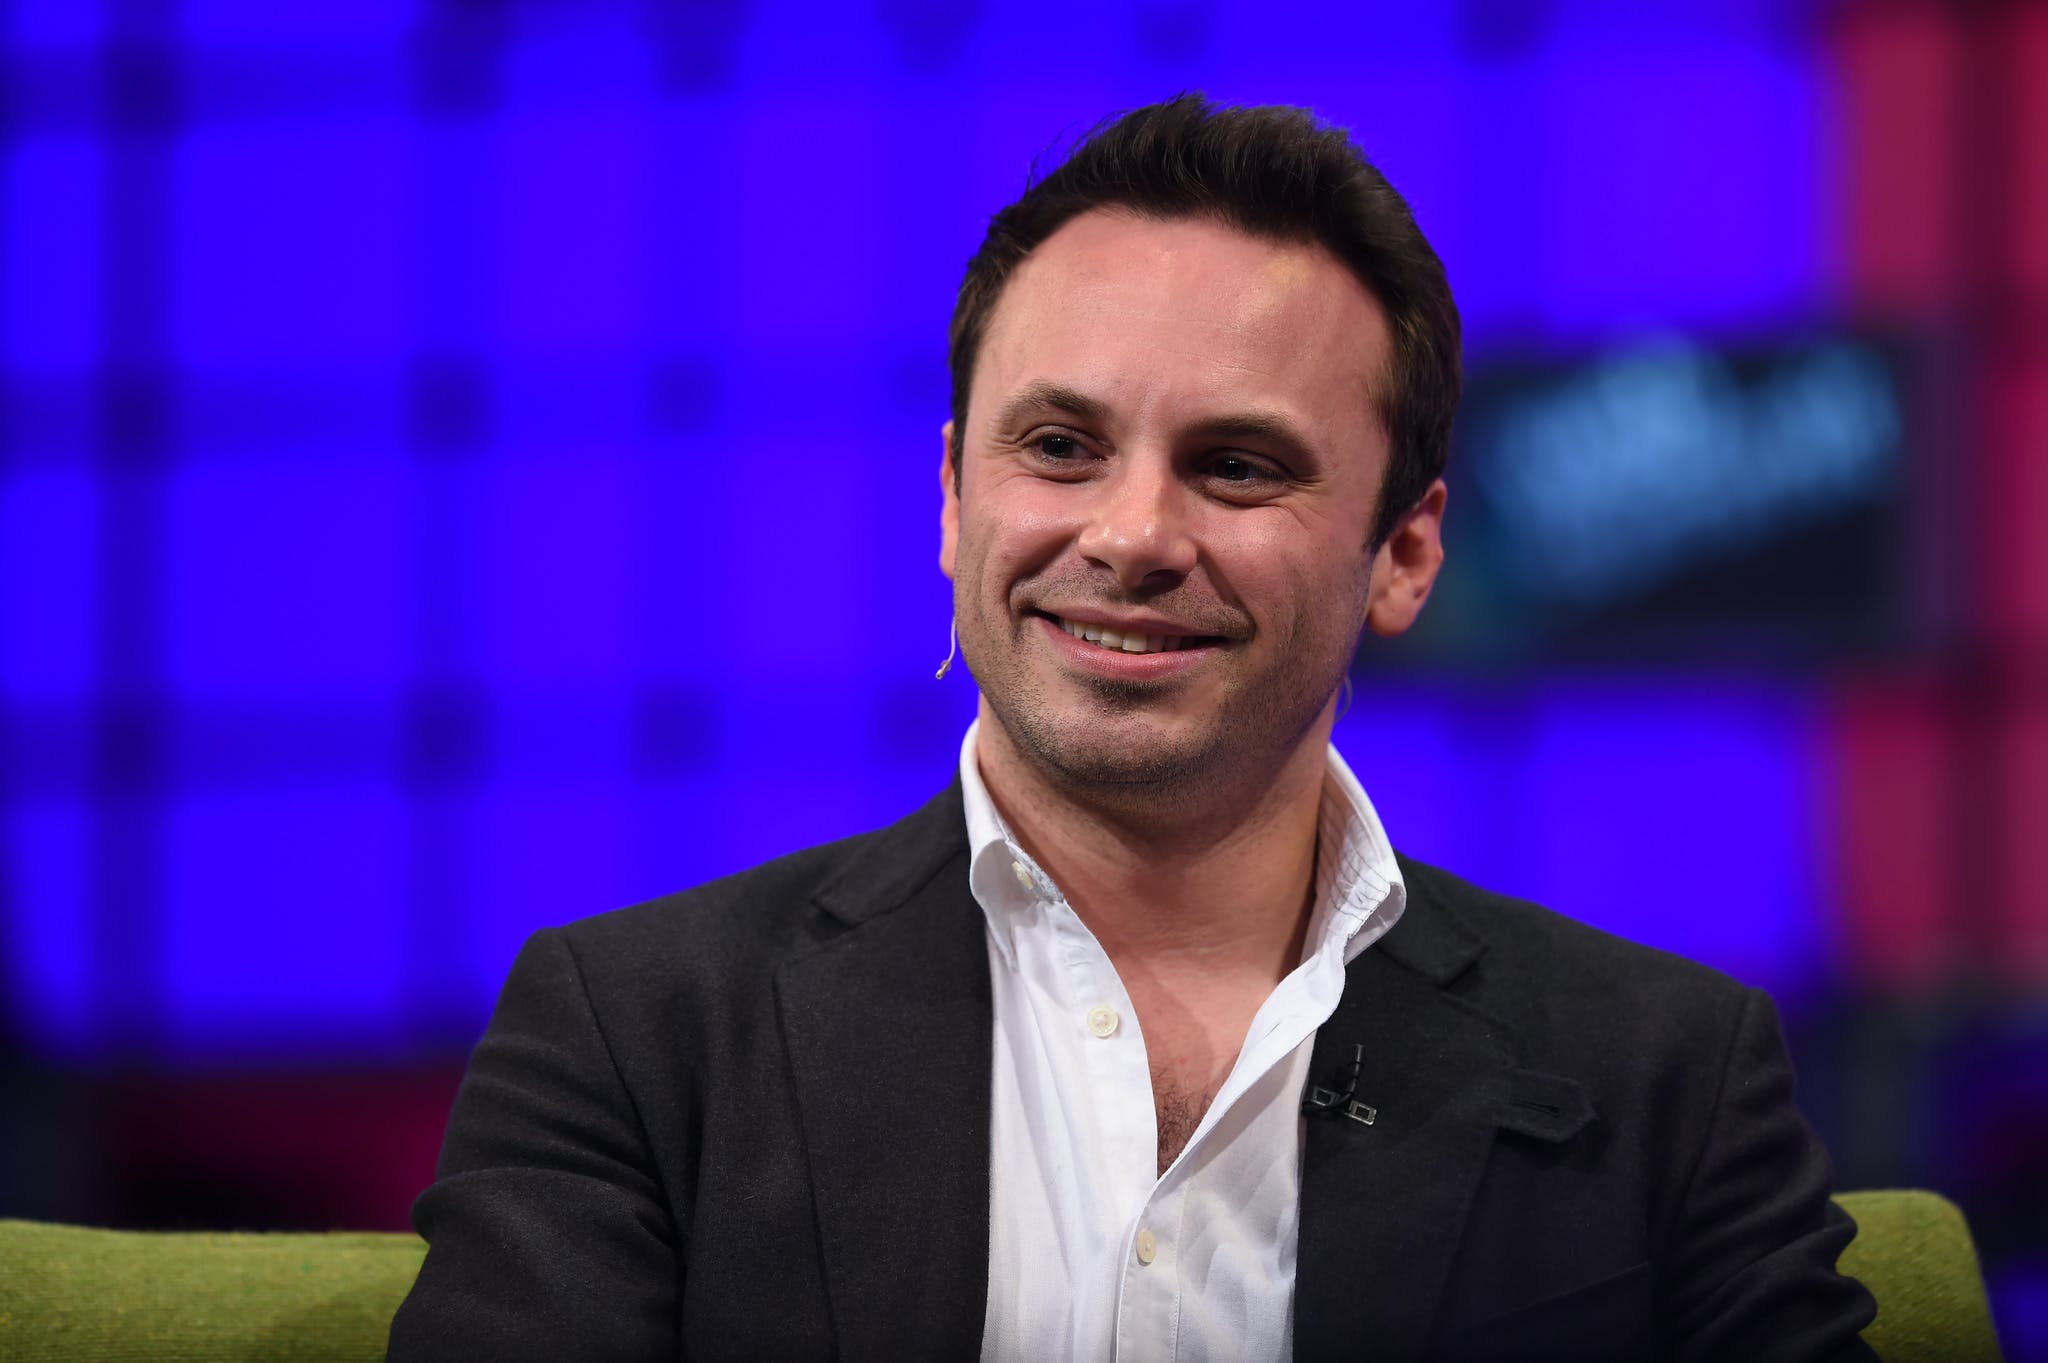 Oculus Rift chief executive Brendan Iribe